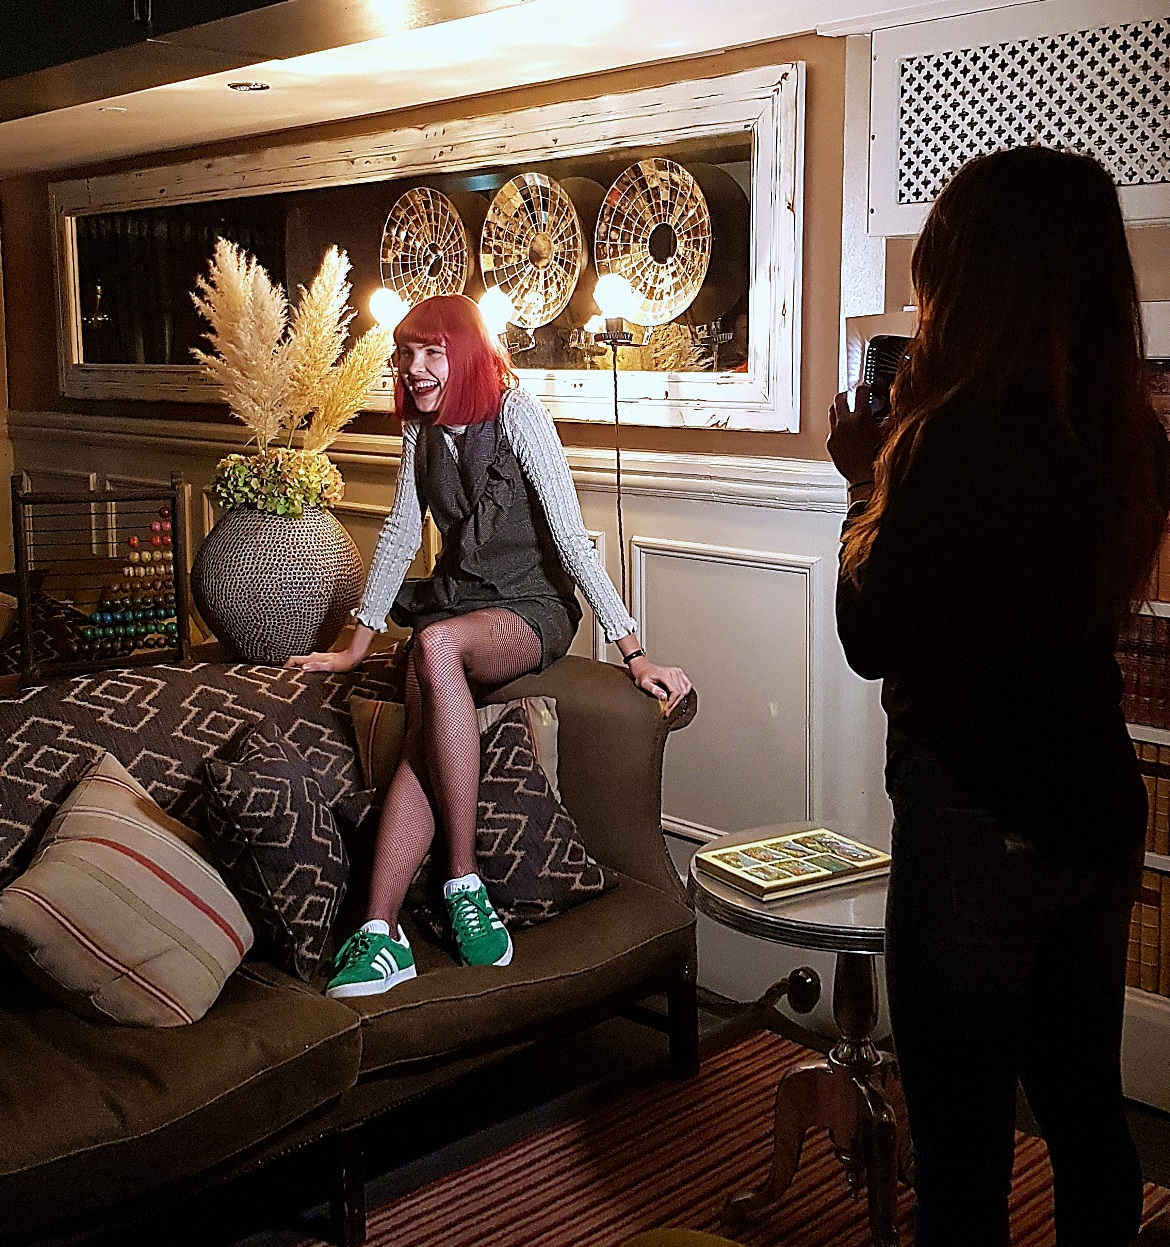 Fashion photography at Manfrotto Photography Masterclass - November Monthly Recap by BeckyBecky Blogs